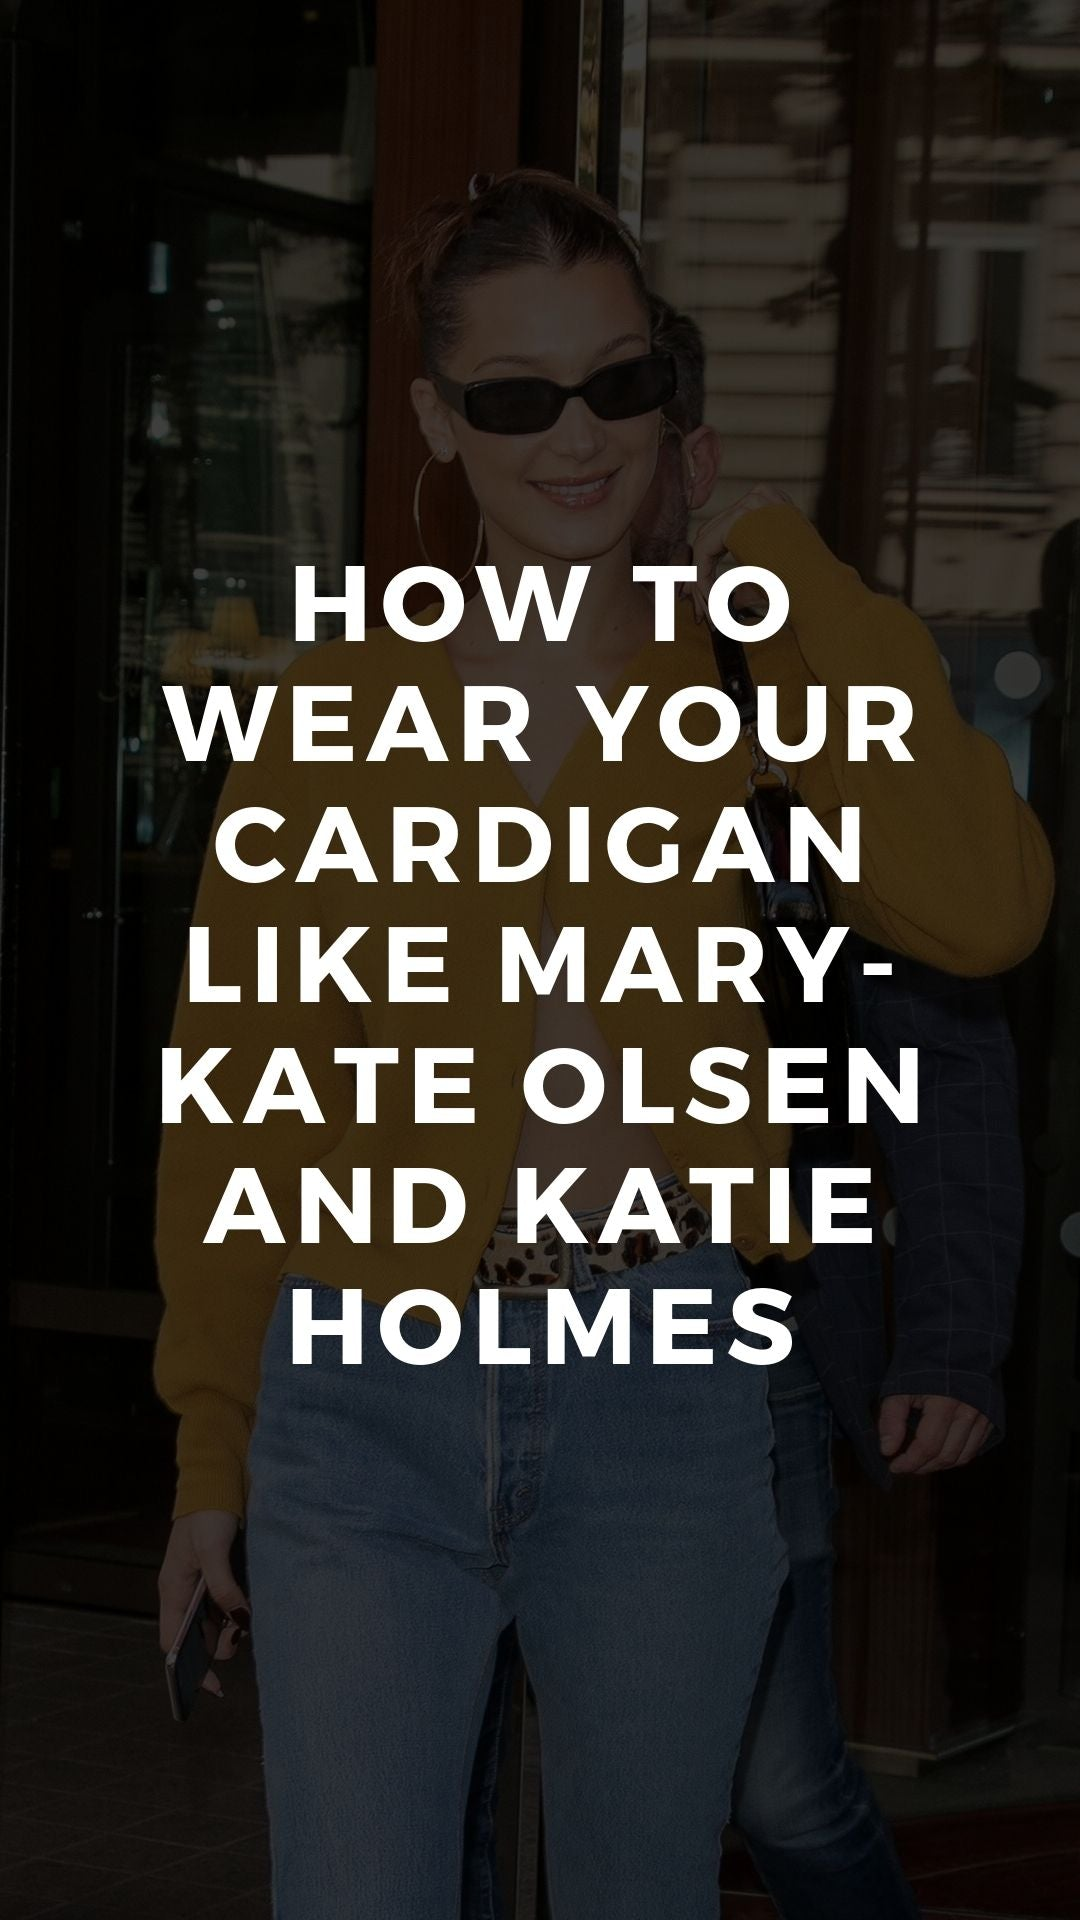 How to Wear Your Cardigan Like Mary-Kate Olsen and Katie Holmes